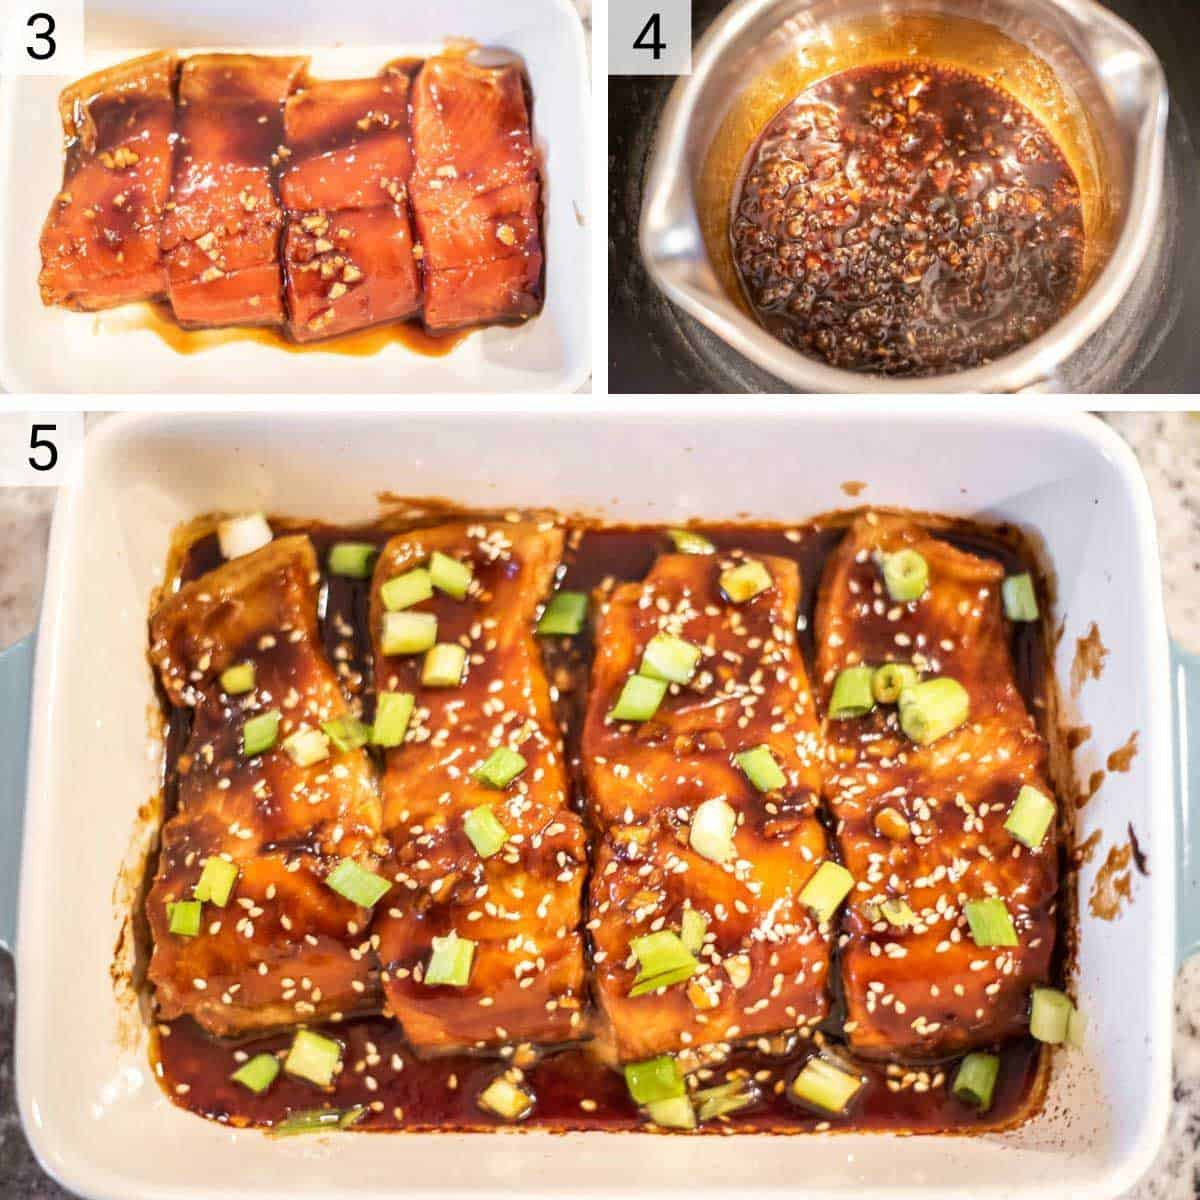 process shots of adding salmon to baking dish and baking as well as cooking down teriyaki sauce in pan